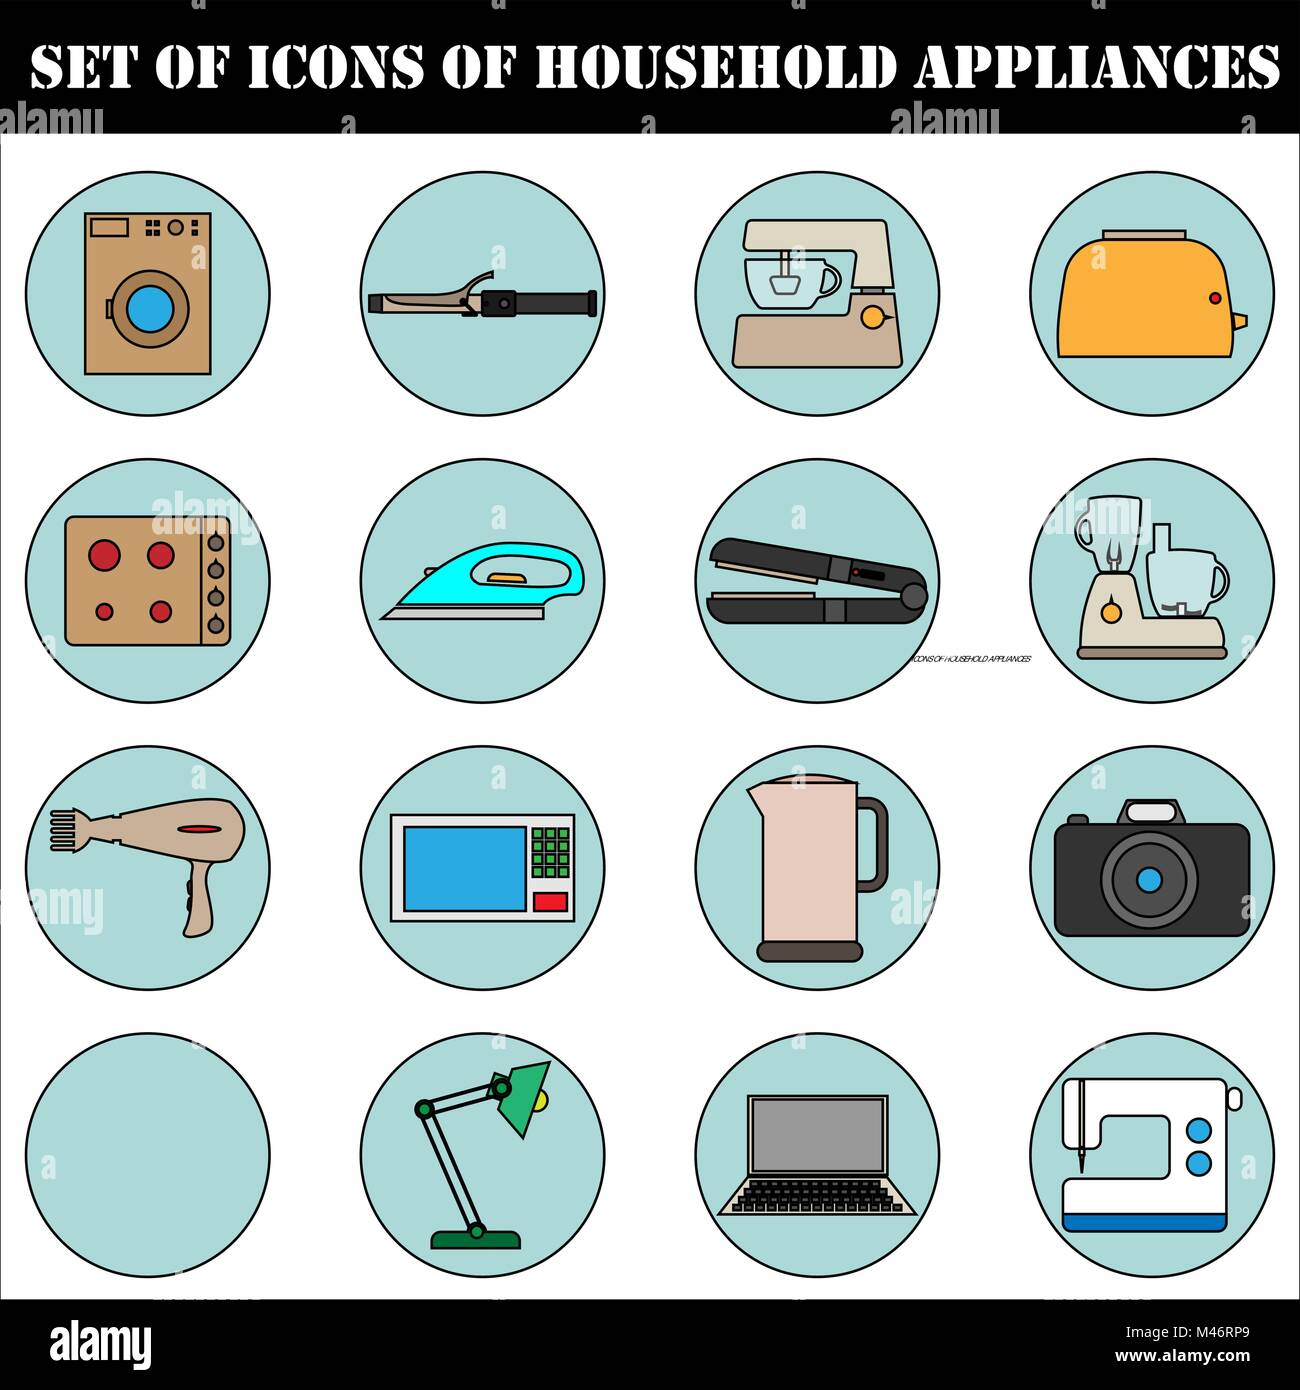 A set of icons of household electrical appliances. Stock Vector